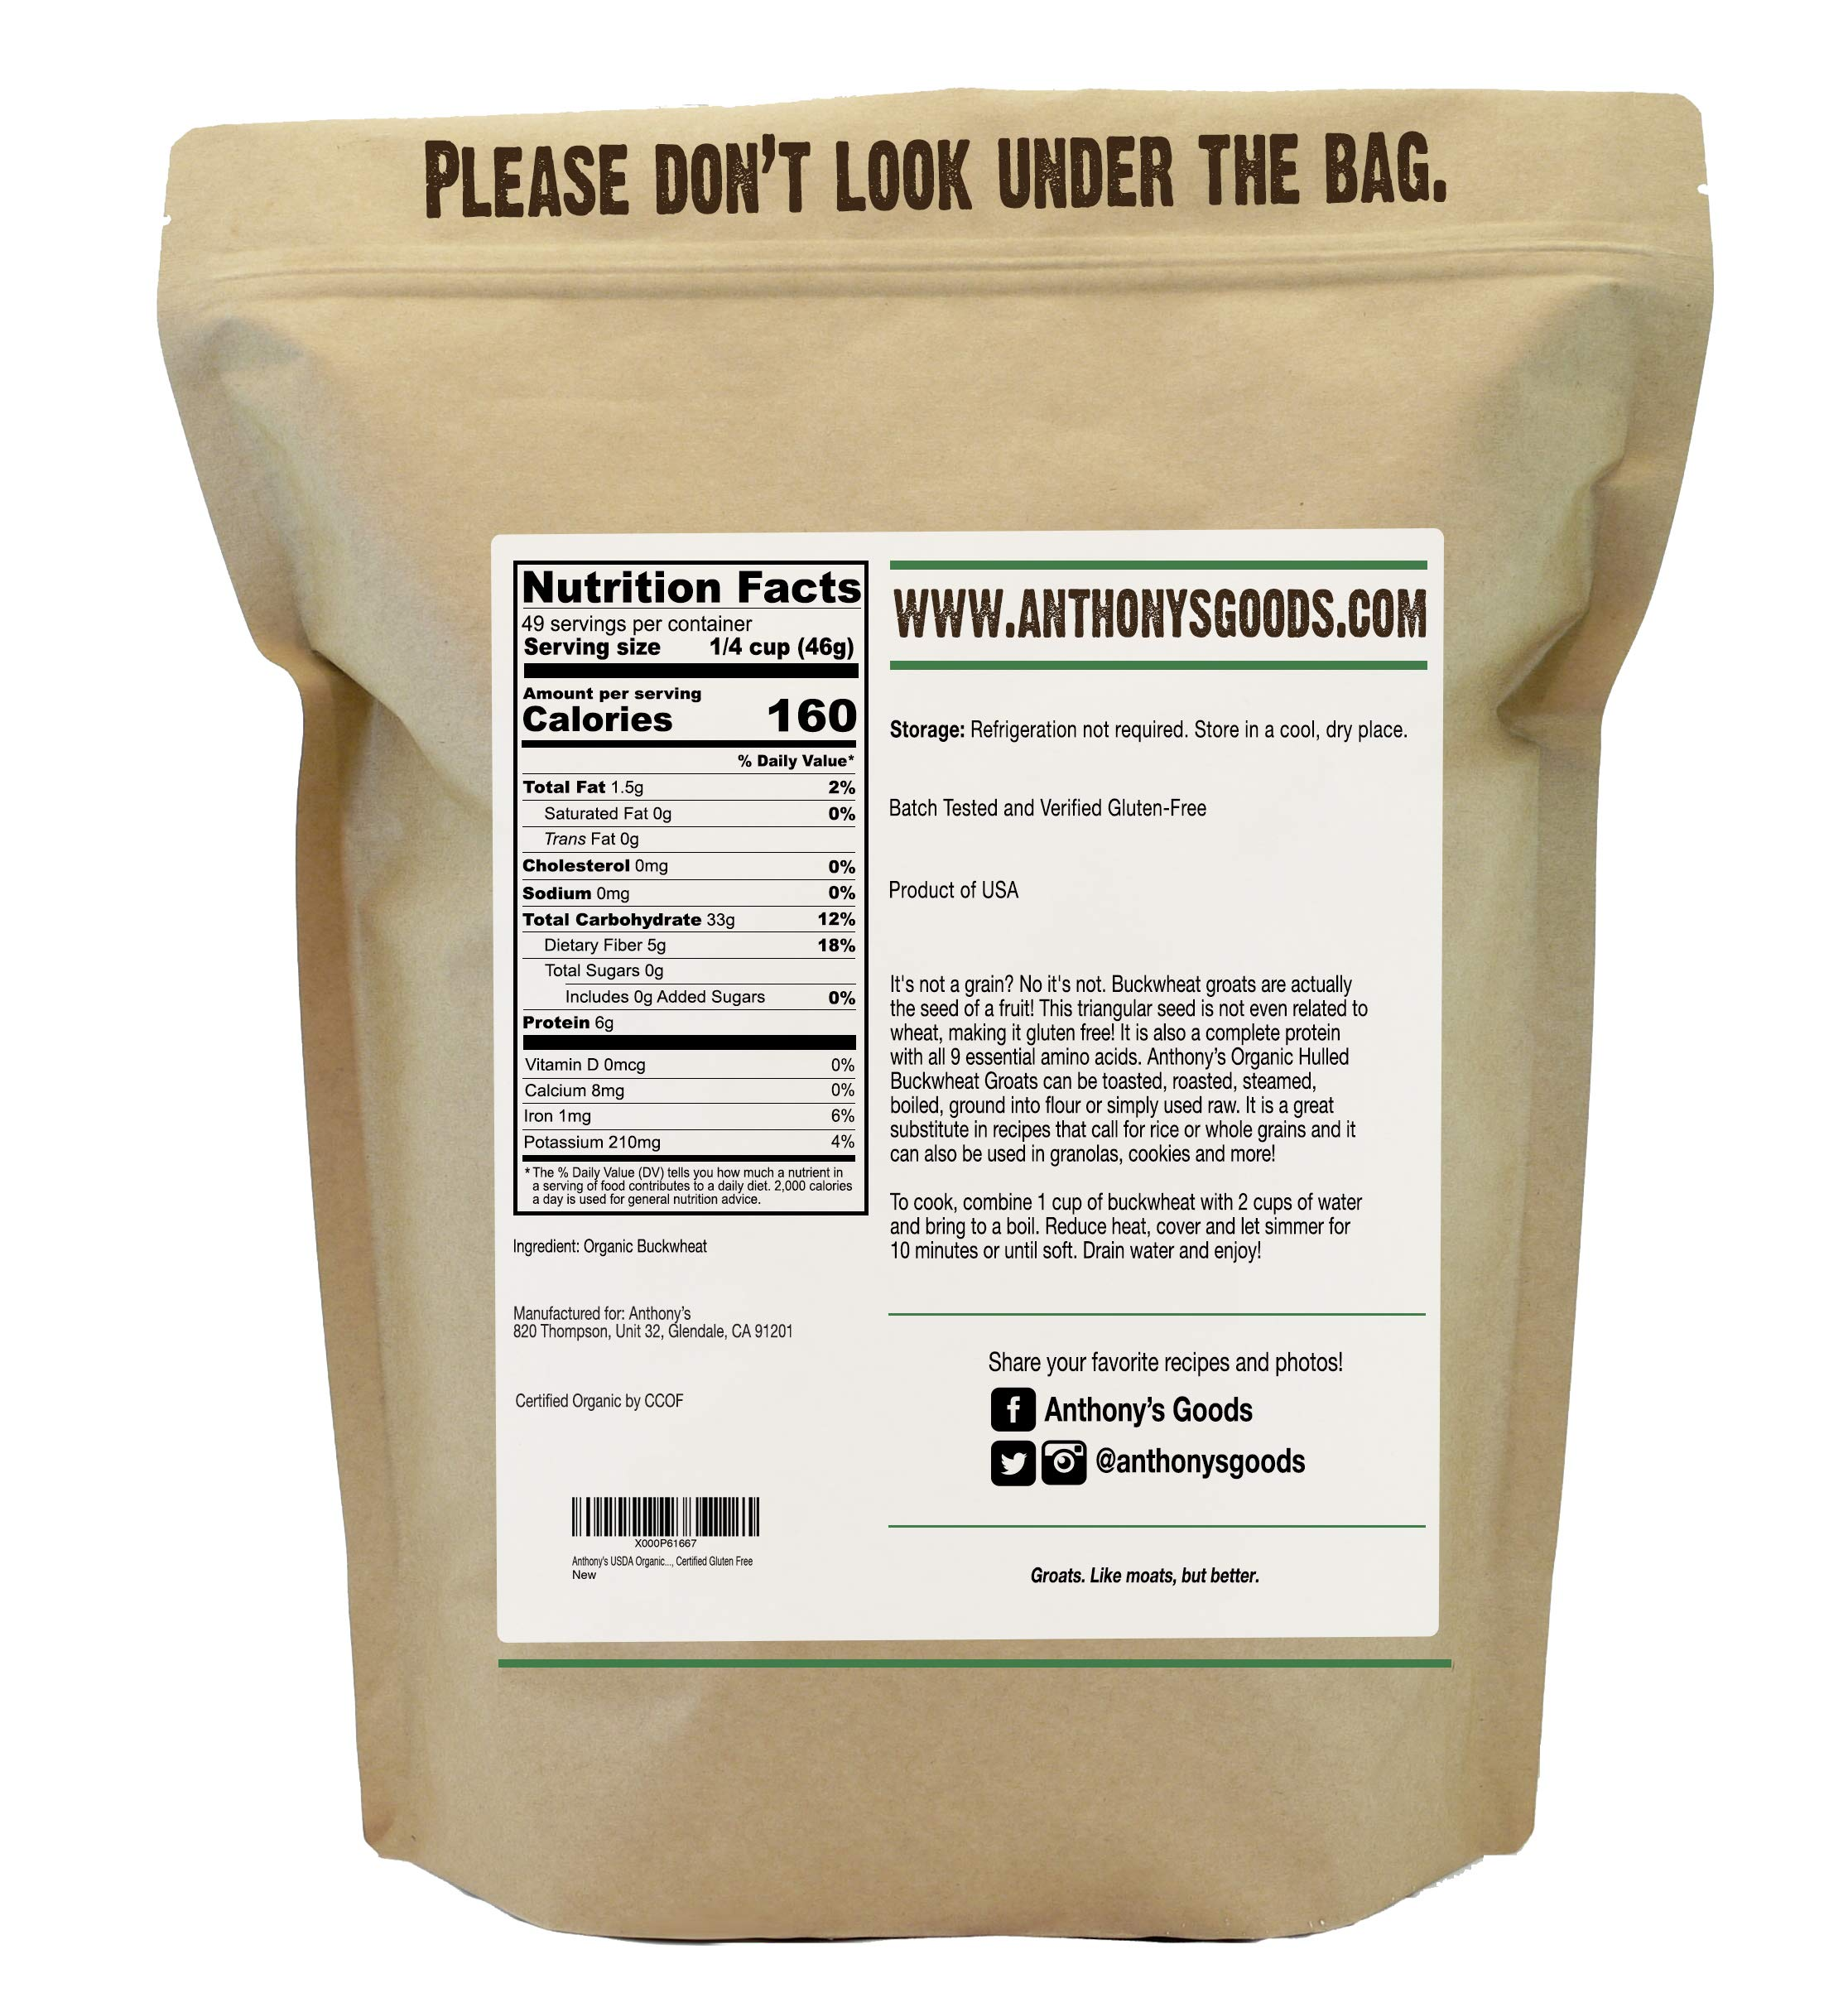 Organic Raw Hulled Buckwheat Groats (5lb) by Anthony's, Grown in USA, Gluten-Free by Anthony's (Image #3)